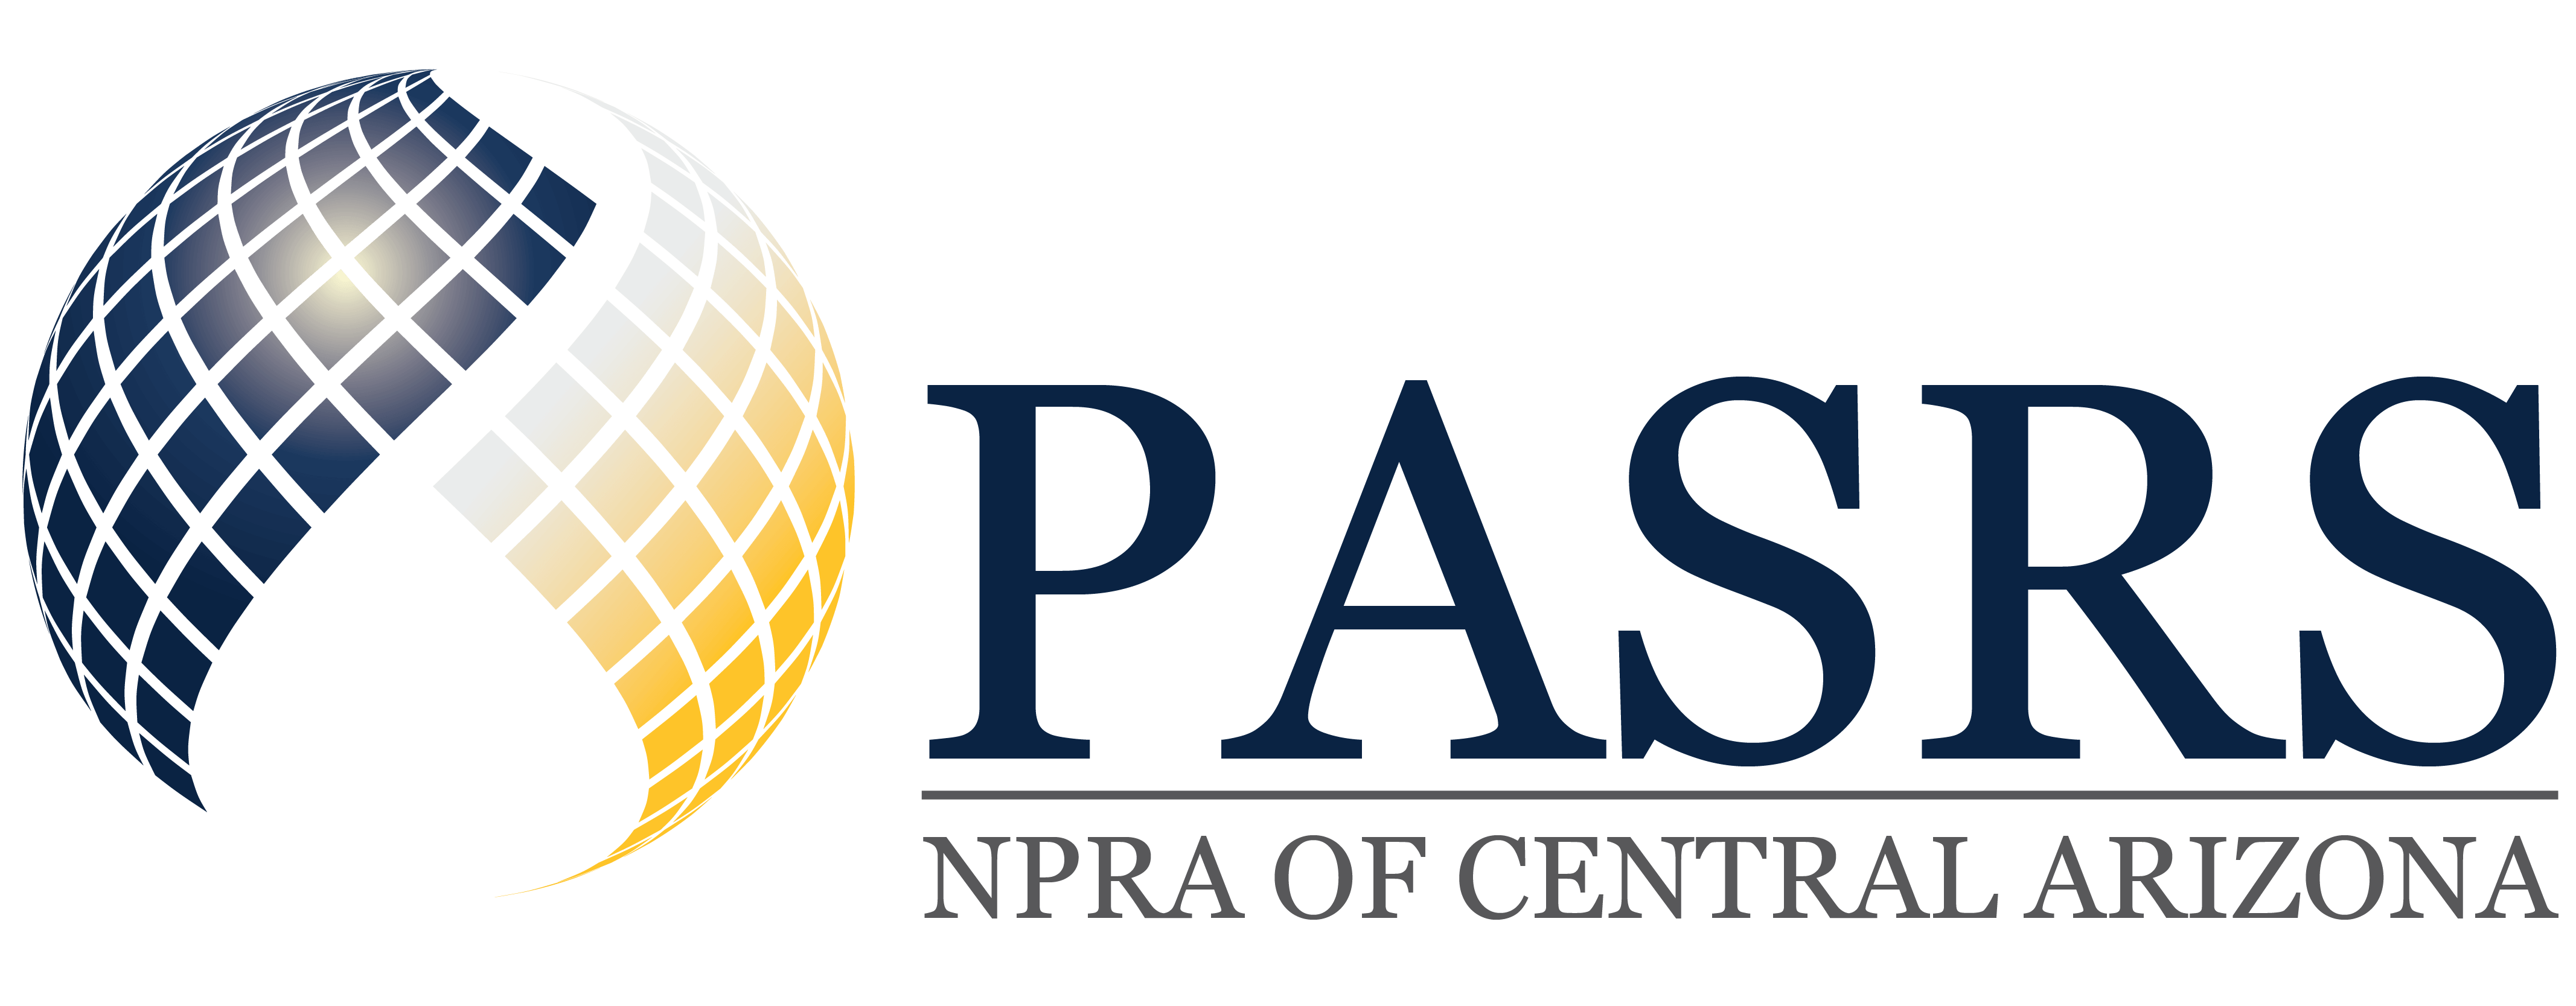 PASRS | Professional Association of Senior Referral Specialists Logo